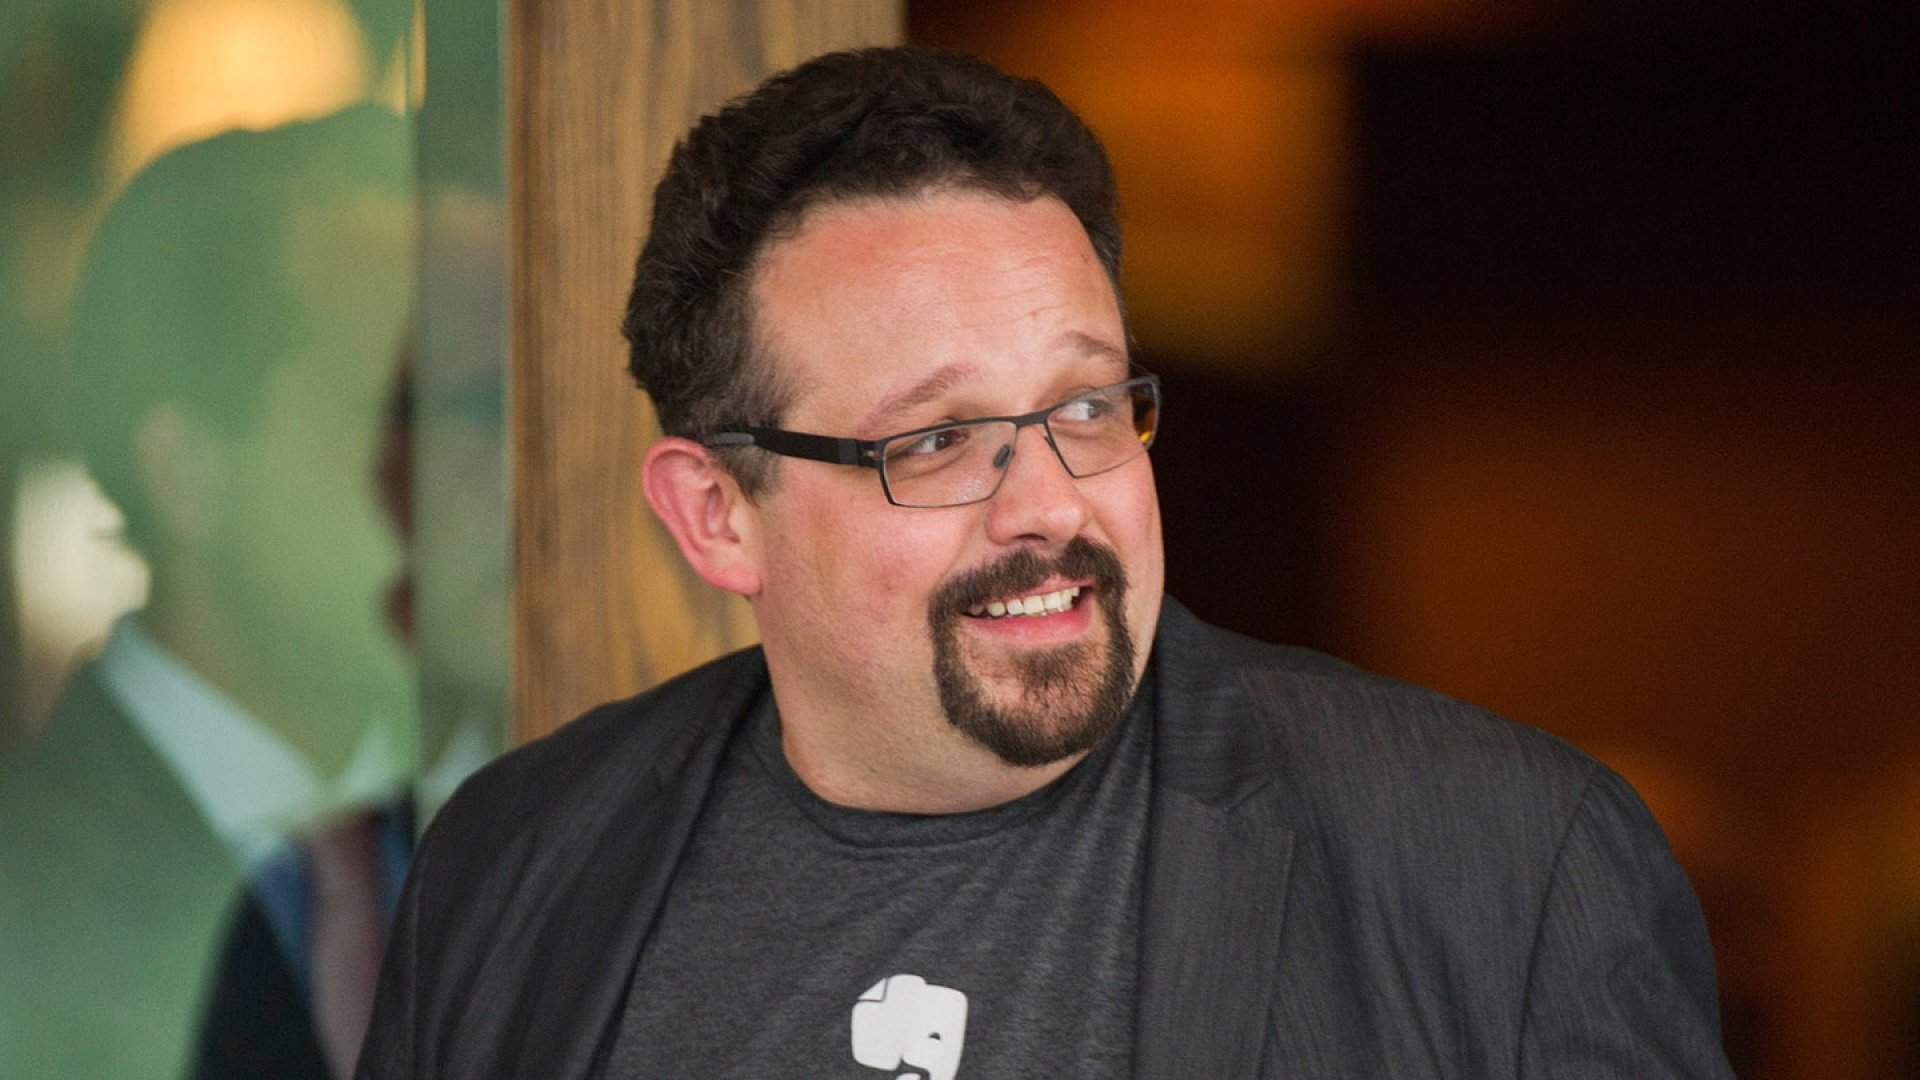 Evernote Founder: Apps Will Soon Be Obsolete